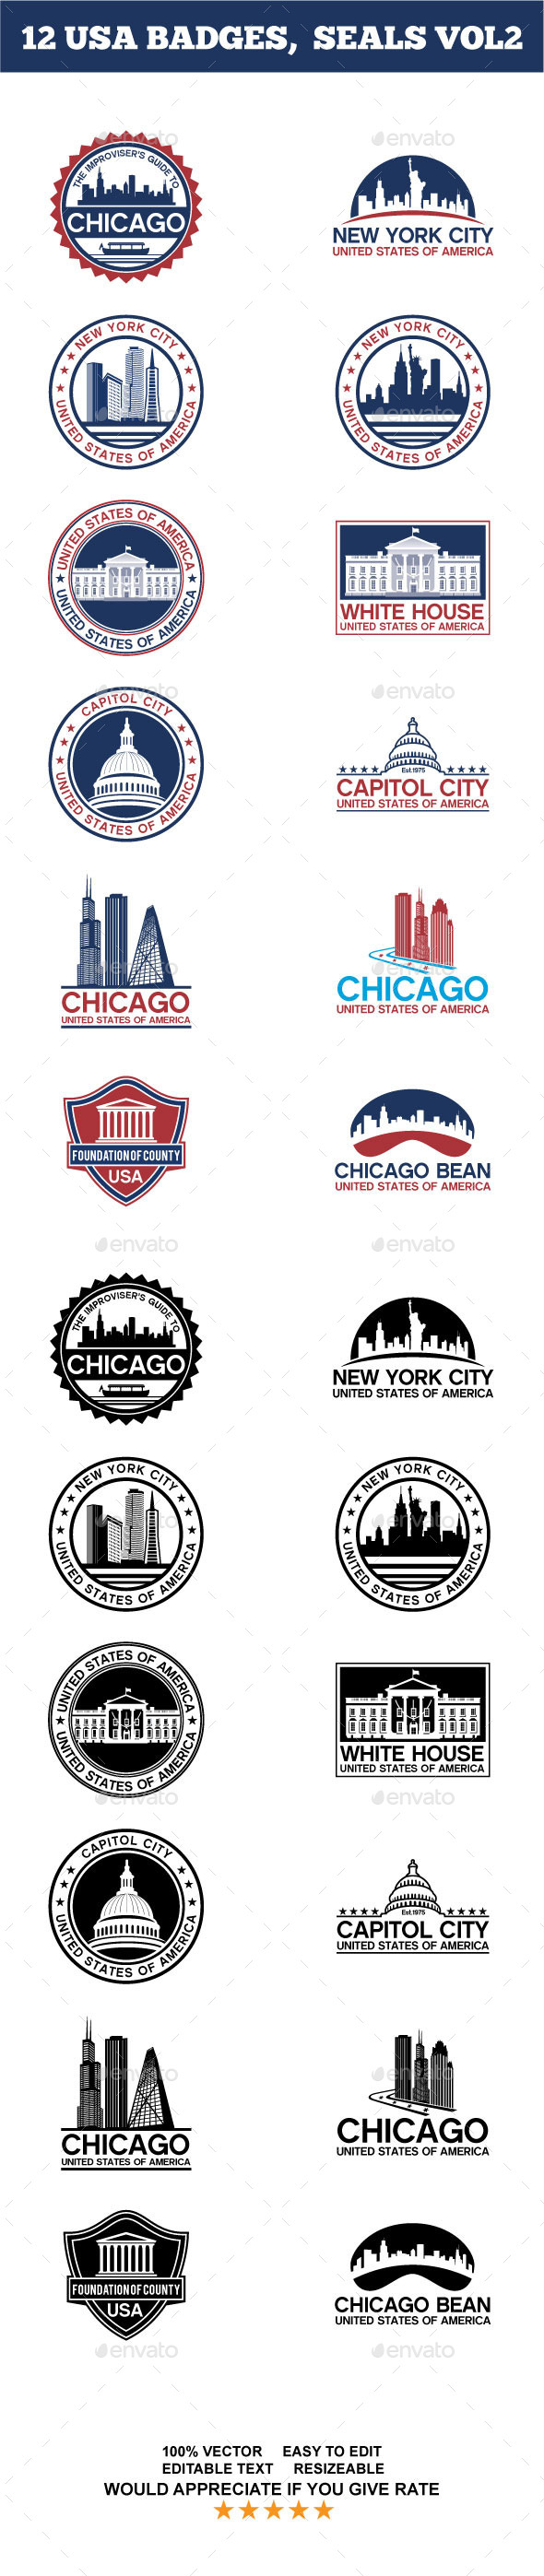 12 USA BADGES, SEALS VOL2 - Badges & Stickers Web Elements